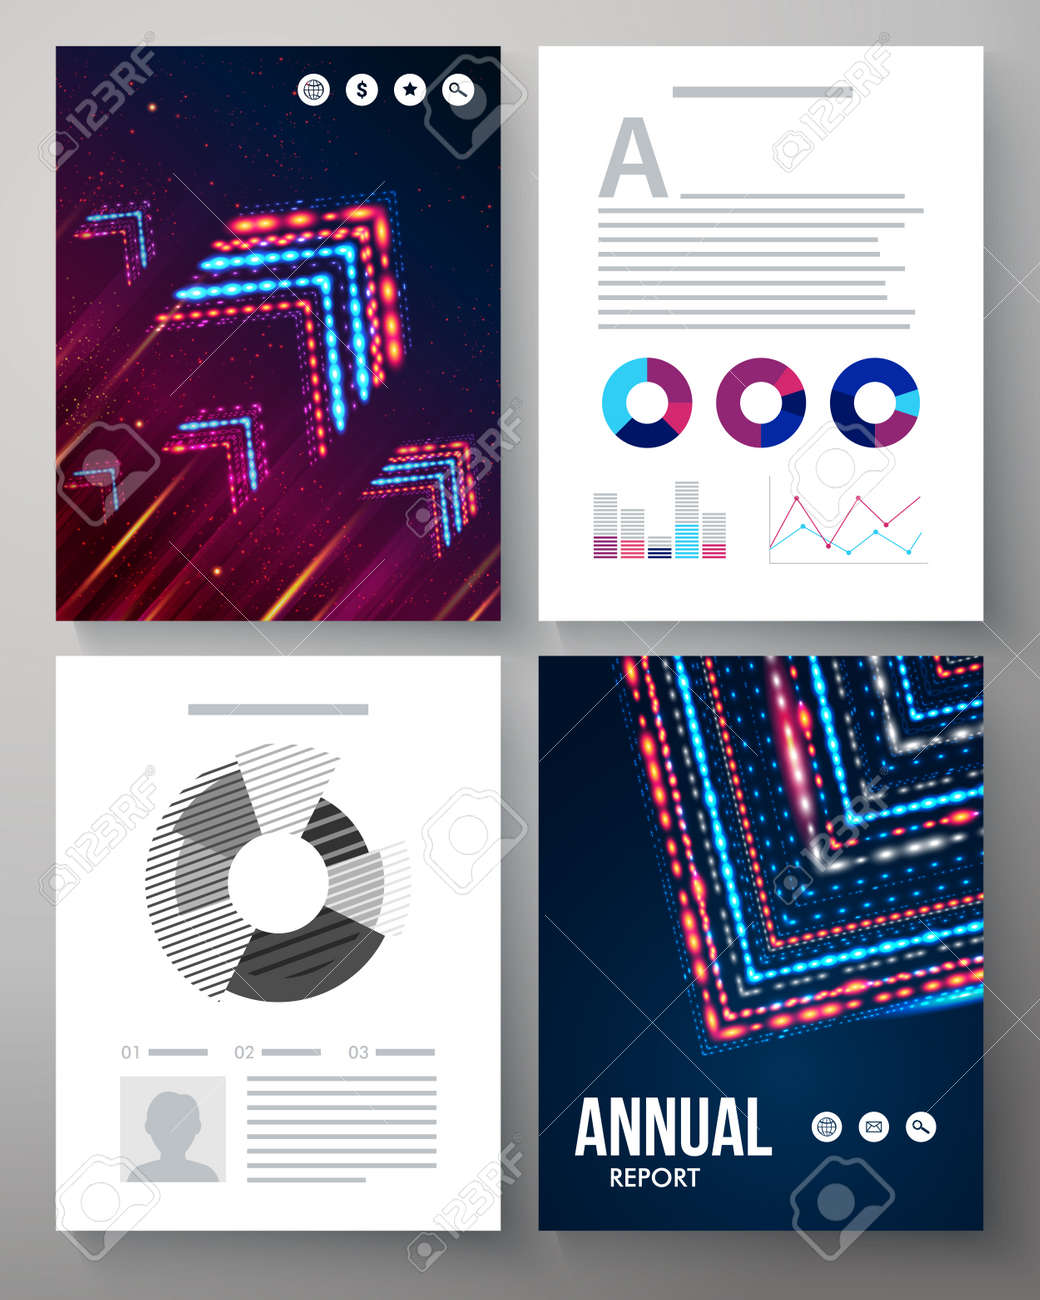 Dynamic Vector Template For An Annual Report With A Cover Pattern – Annual Report Analysis Sample